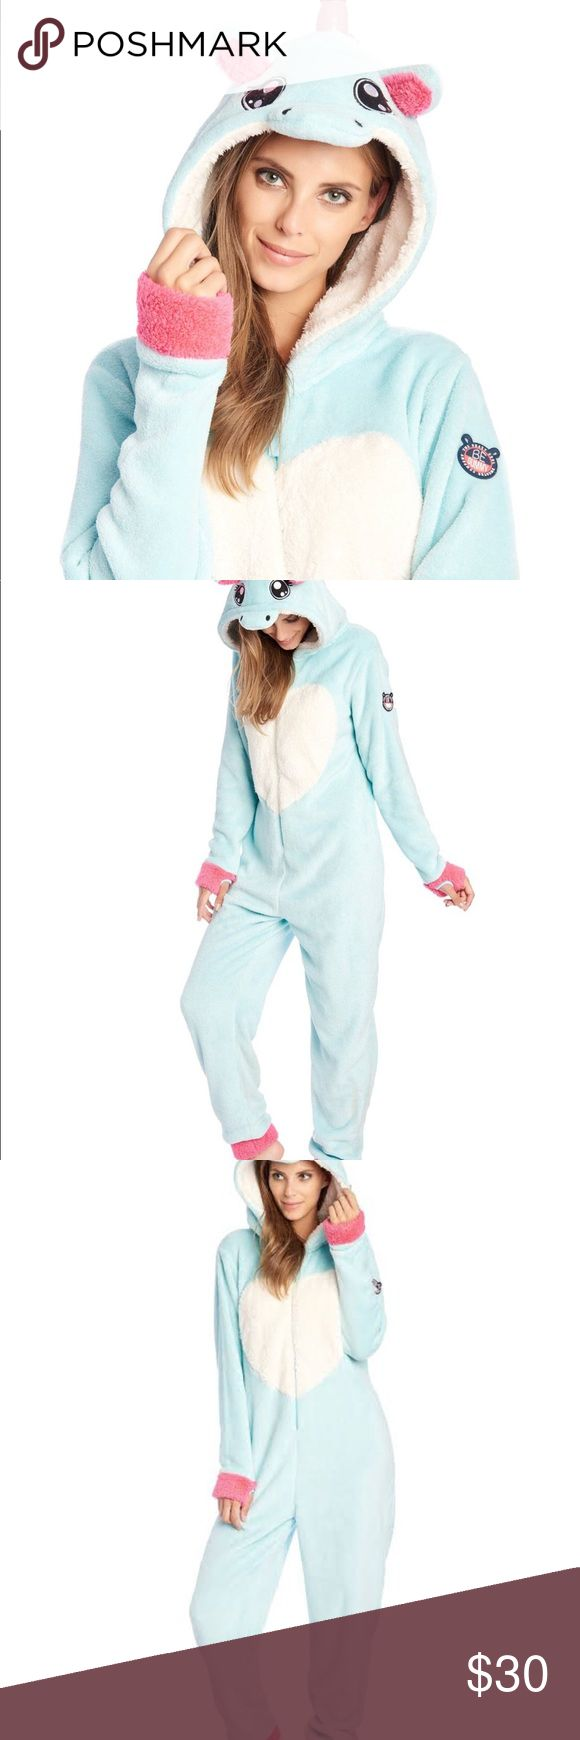 Aqua Blue unicorn 🦄 kigurami * Kigurami hooded onesie in soft teddy fur * Cool unicorn design * Aqua blue color with contrasting white accents and interior * Hood with animal ears design * Easy to wash * 100% polyester • in excellent condition (used and washed once) Sazac Other